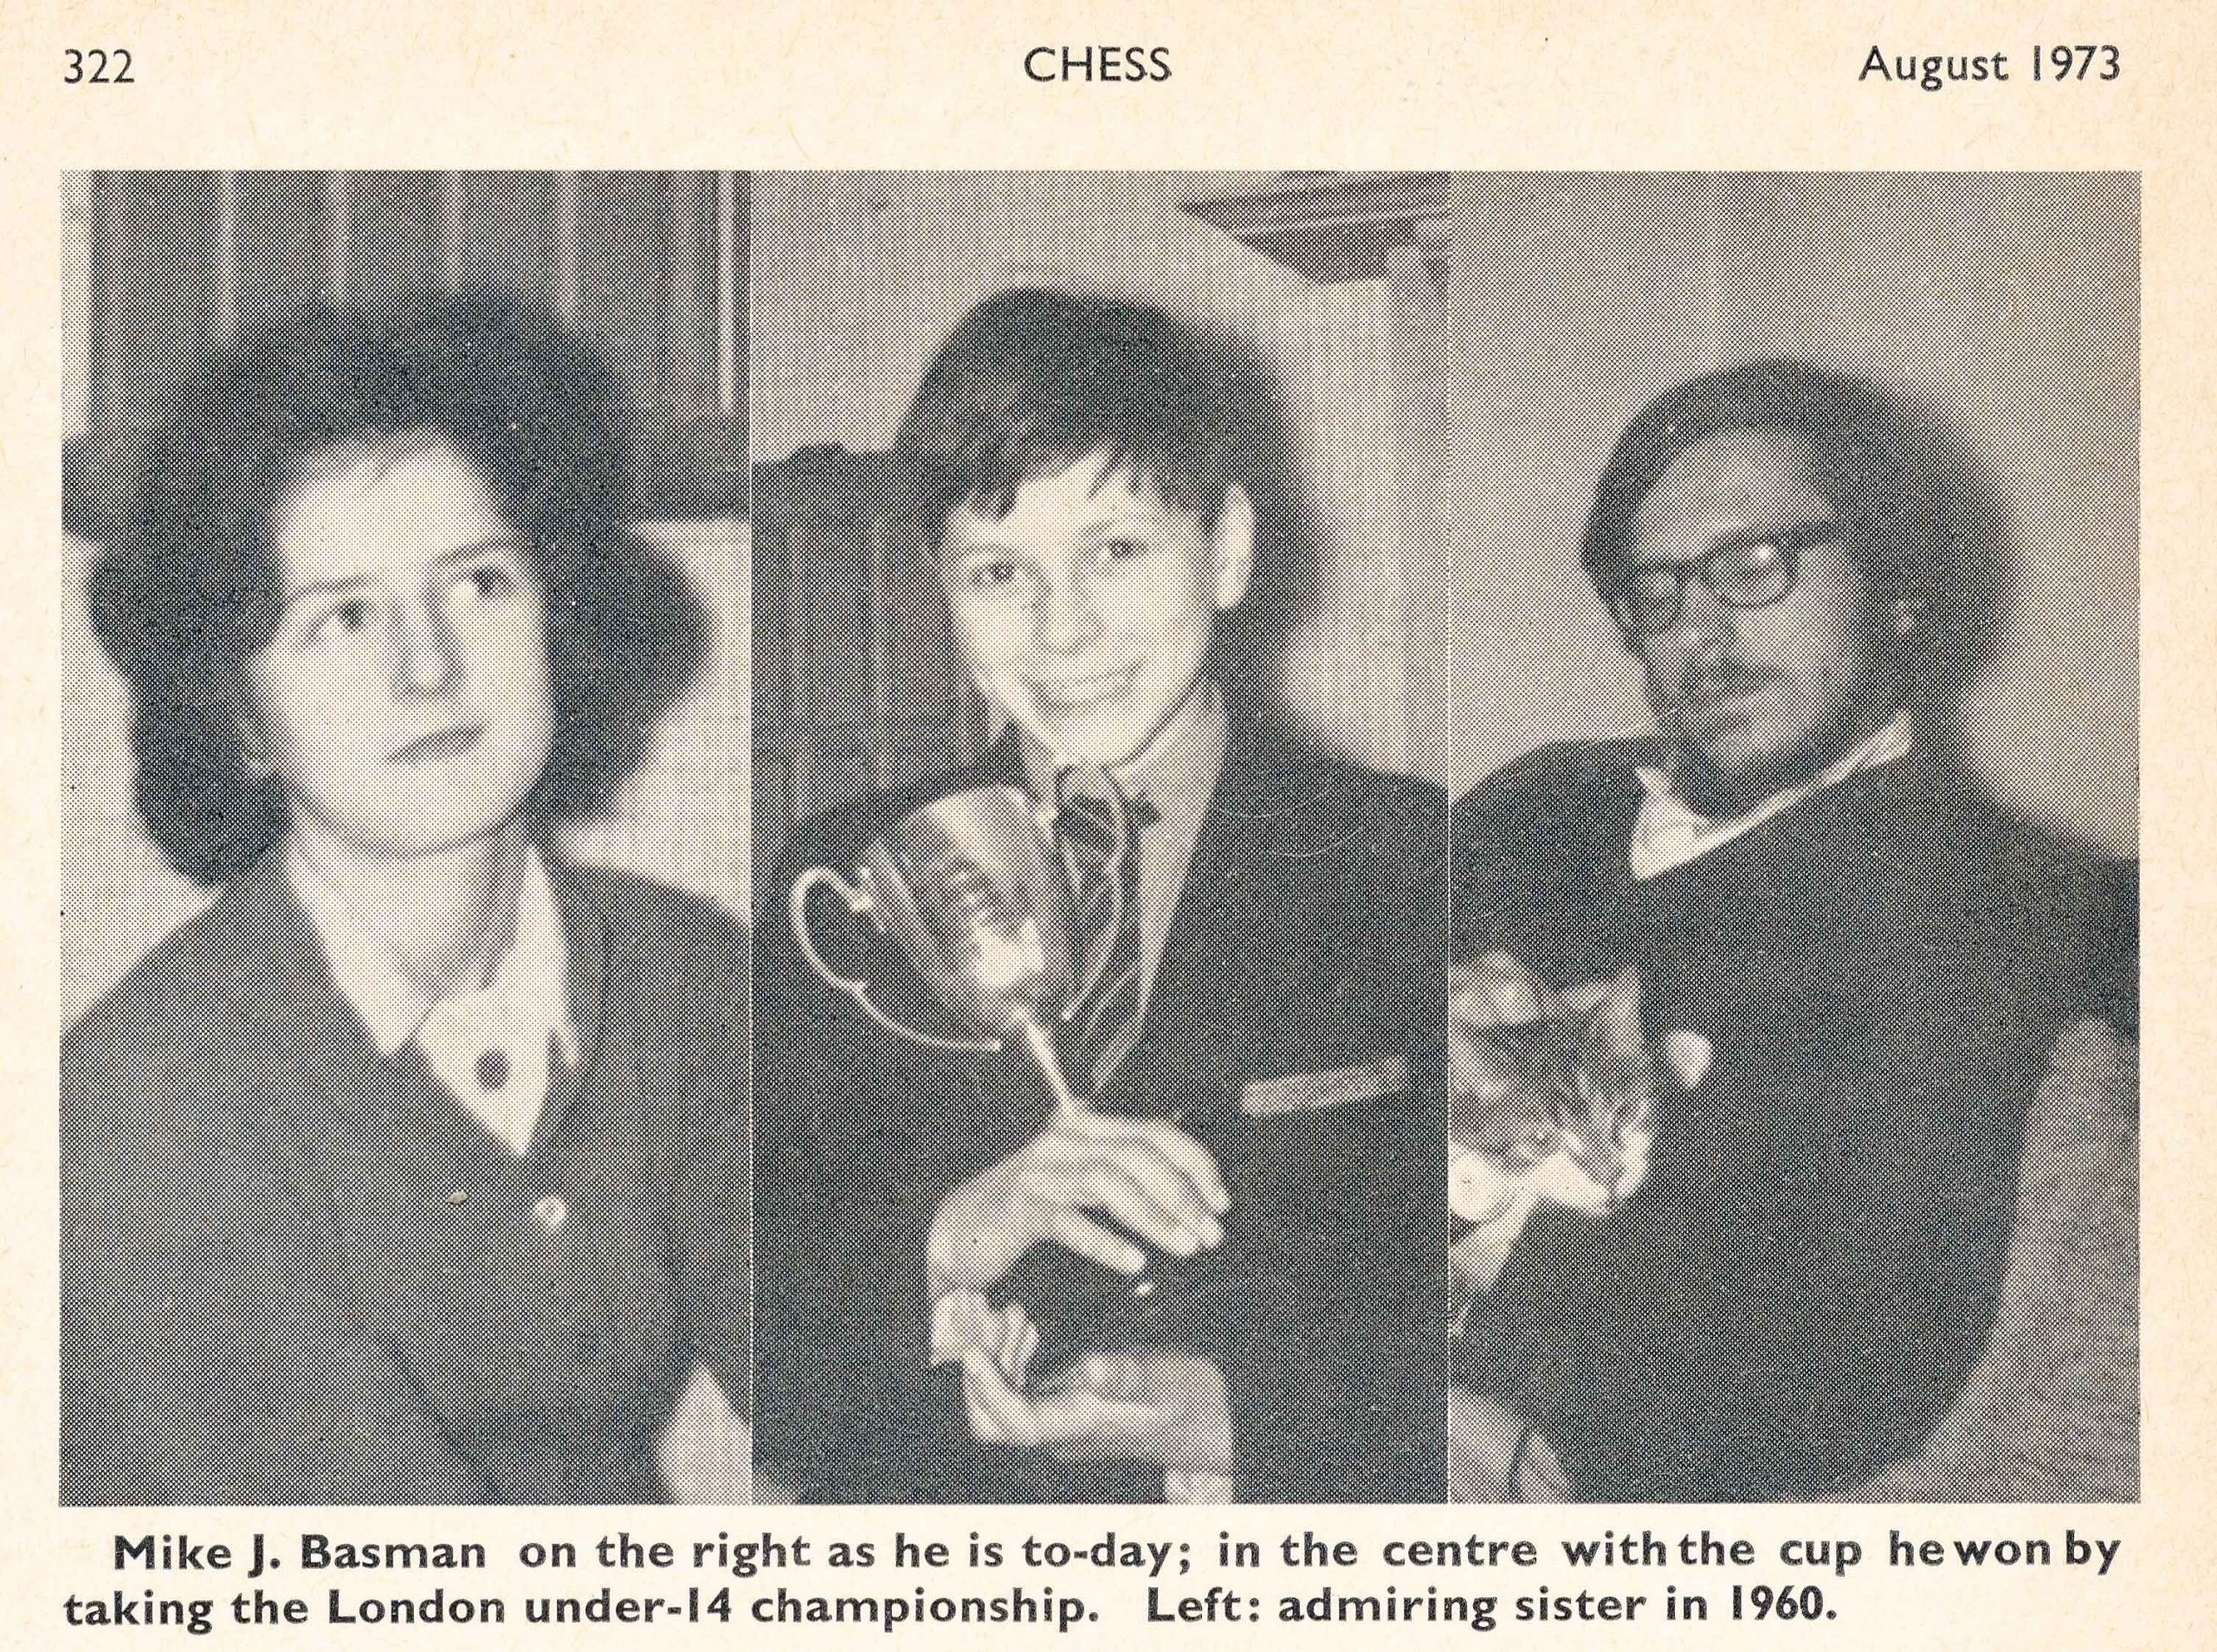 Mike J. Basman on the right as he is to-day; in the centre with the cup he won by taking the London under-14 championship. Left : admiring sister in 1960. From CHESS, August 1973, page 322.